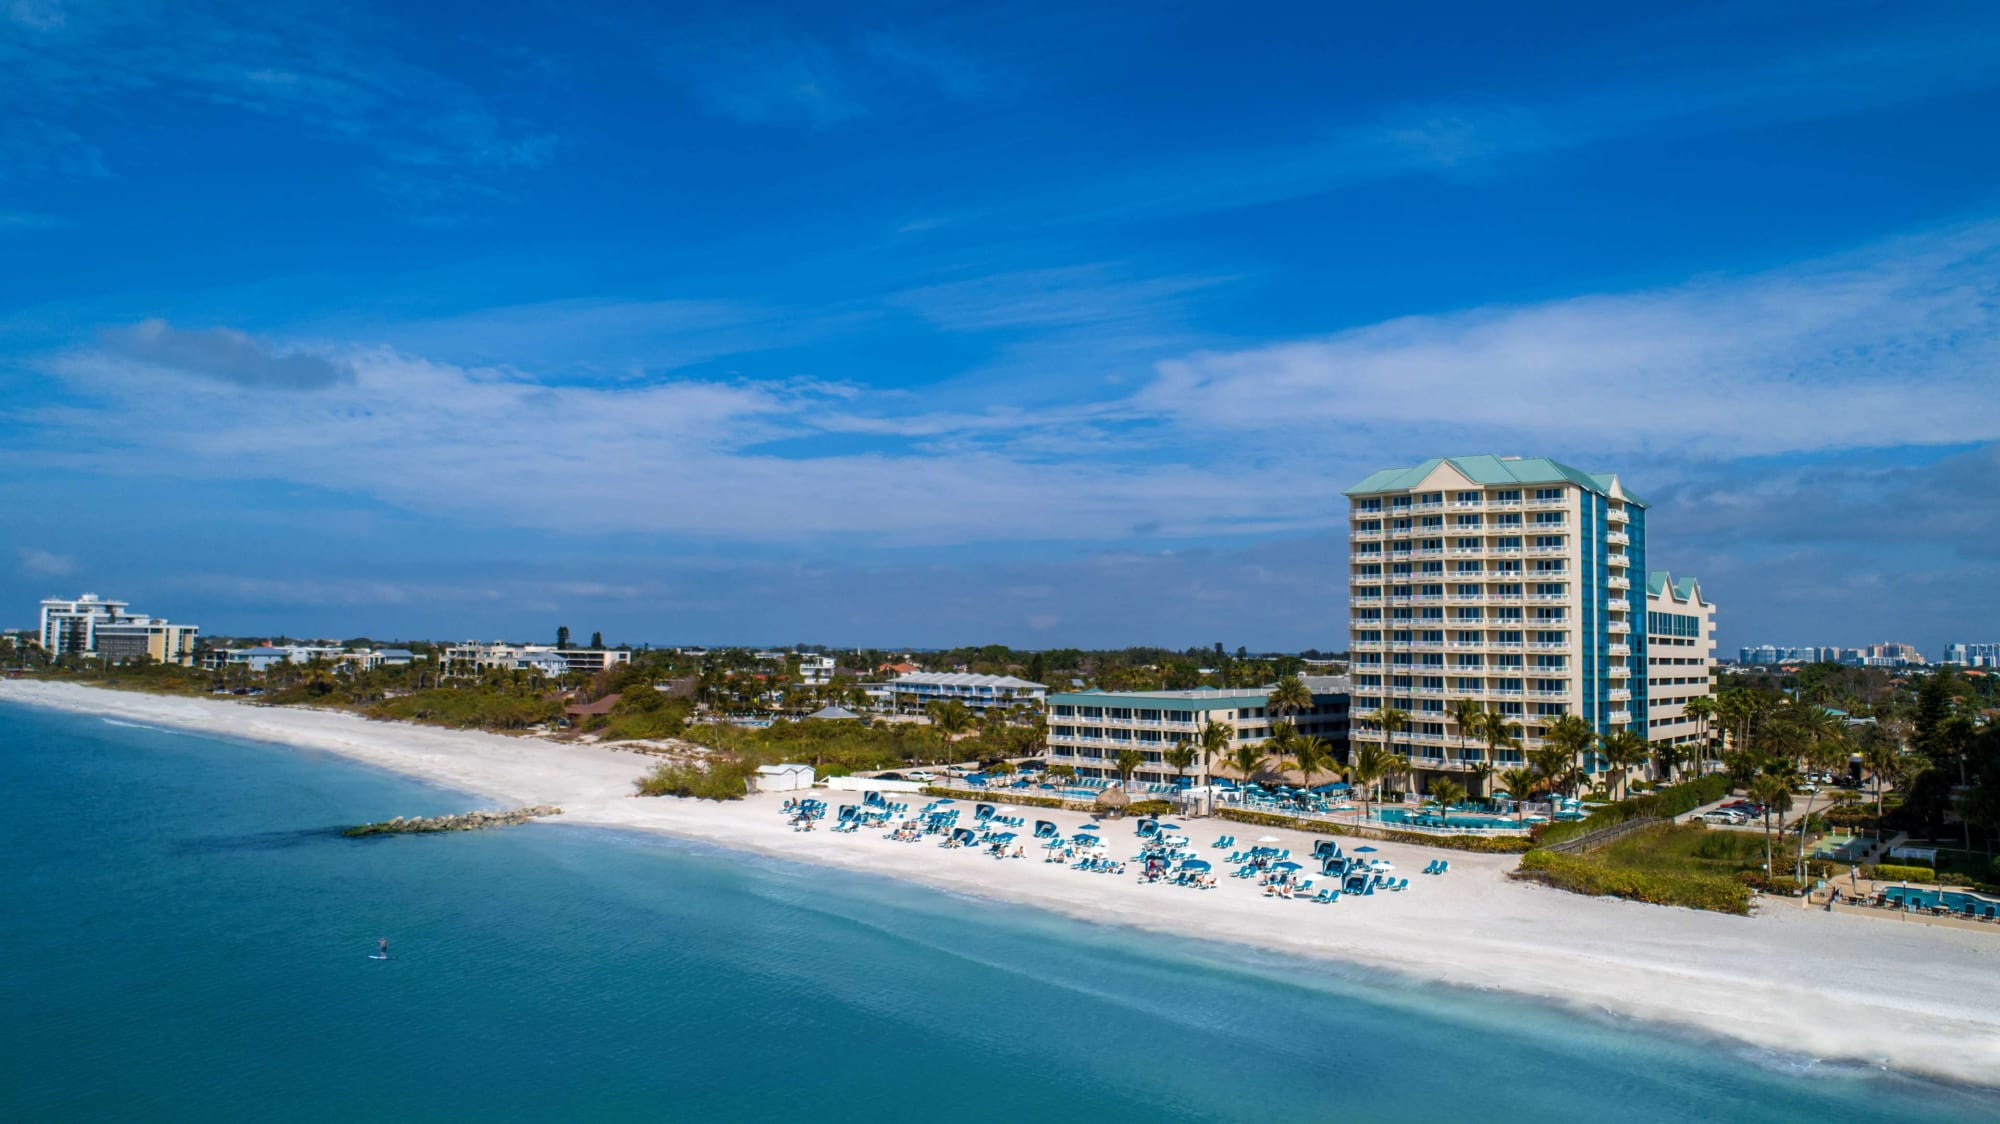 Best Western Sarasota Beach  The best beaches in the world